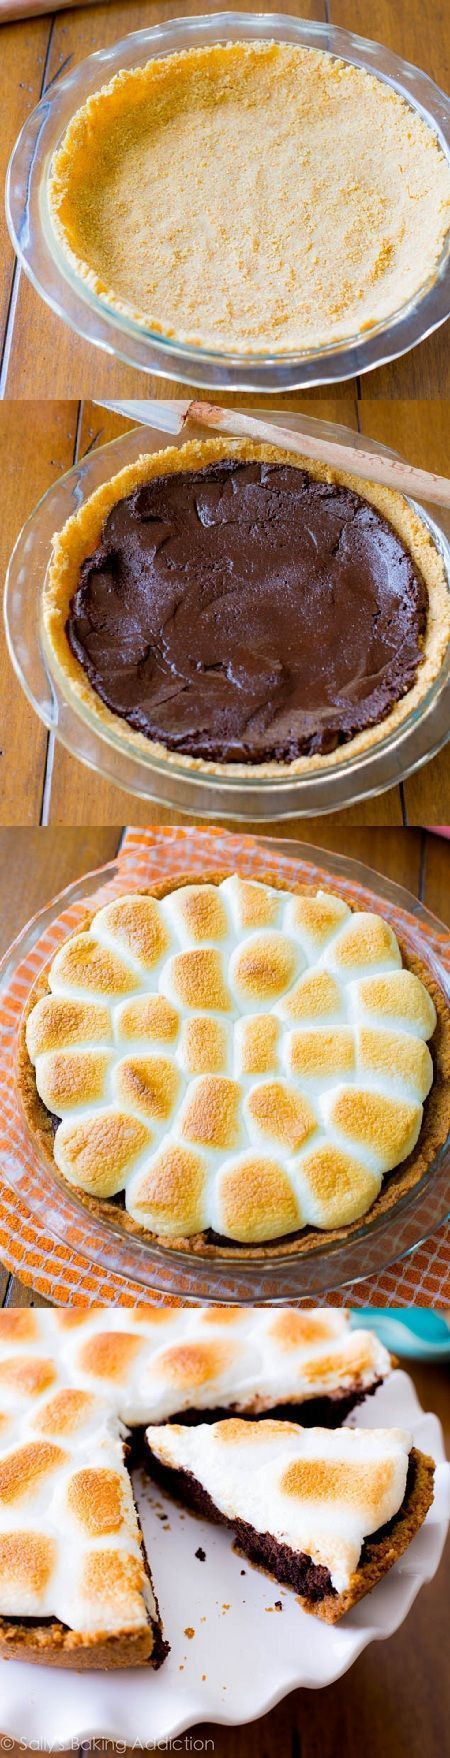 S'mores on top of a brownie pie - no campfire required!